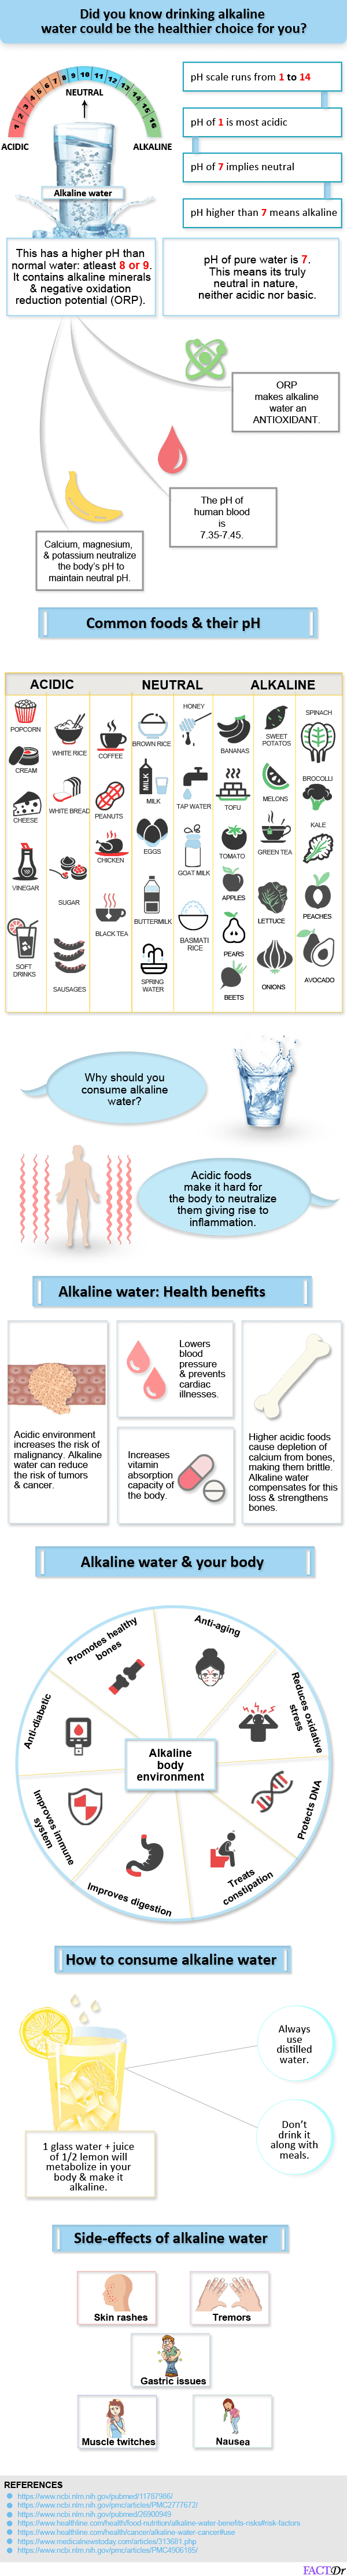 Did you know drinking alkaline water could be the healthier choice for you?